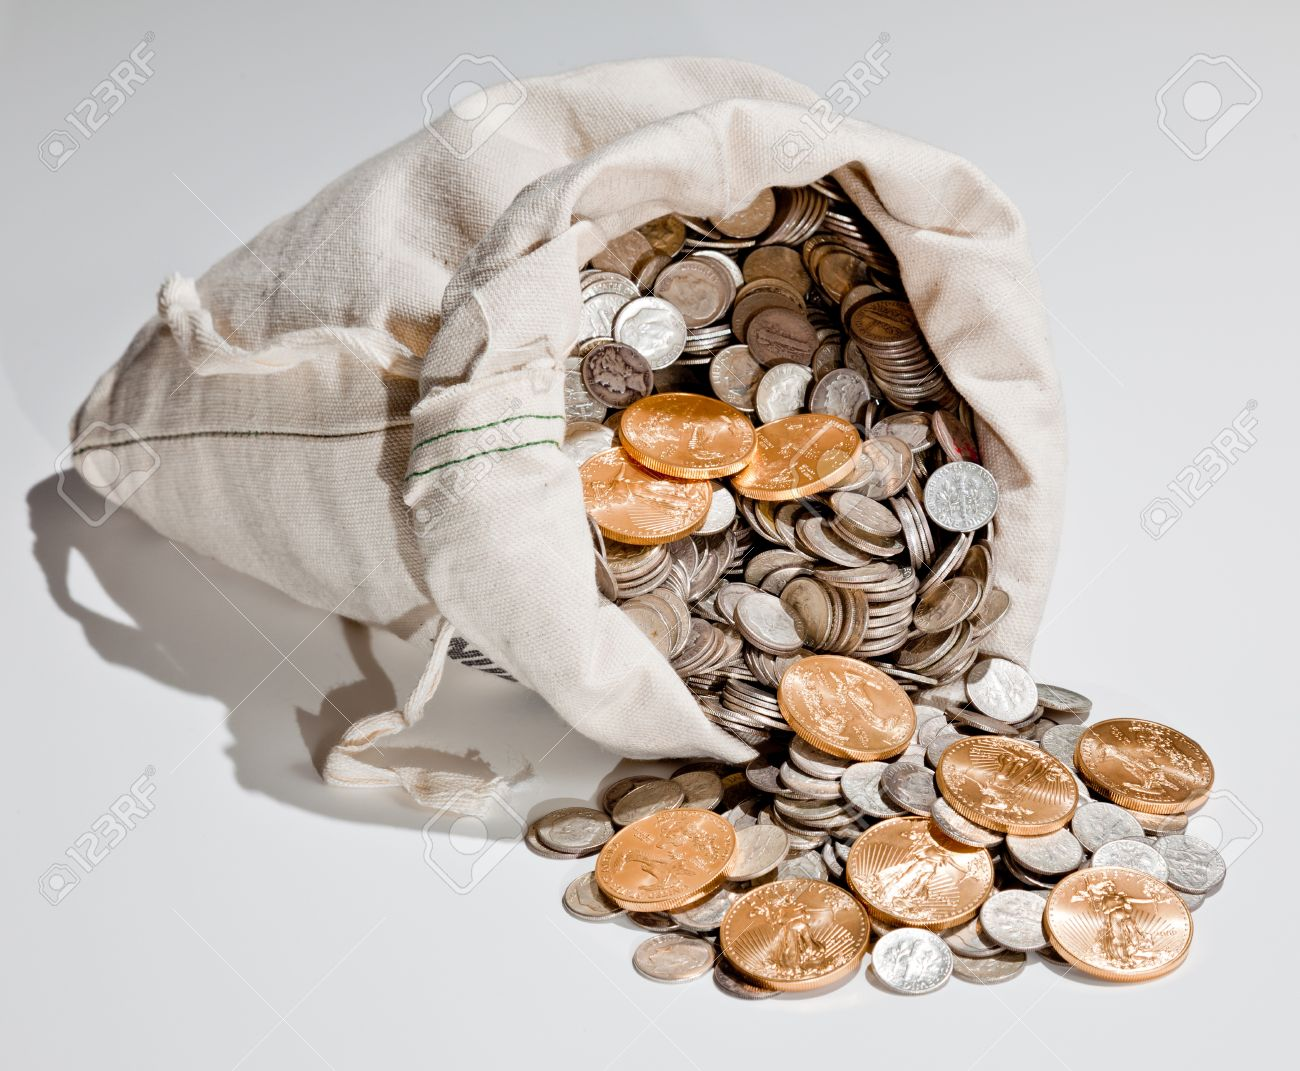 Linen bag of old pure silver coins used to invest in silver as